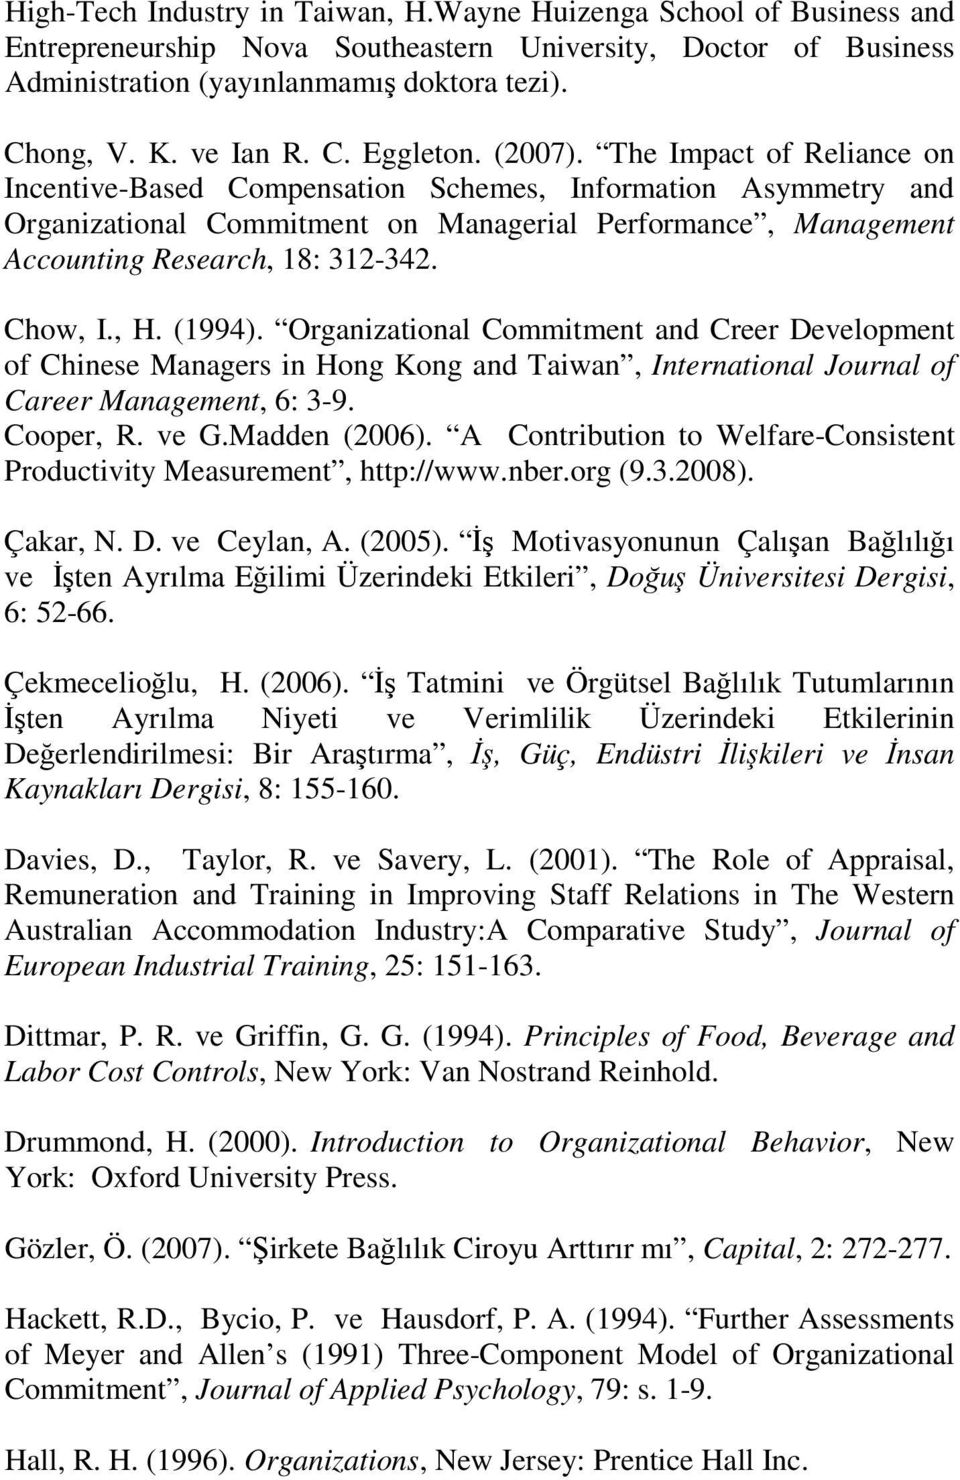 The Impact of Reliance on Incentive-Based Compensation Schemes, Information Asymmetry and Organizational Commitment on Managerial Performance, Management Accounting Research, 18: 312-342. Chow, I., H.